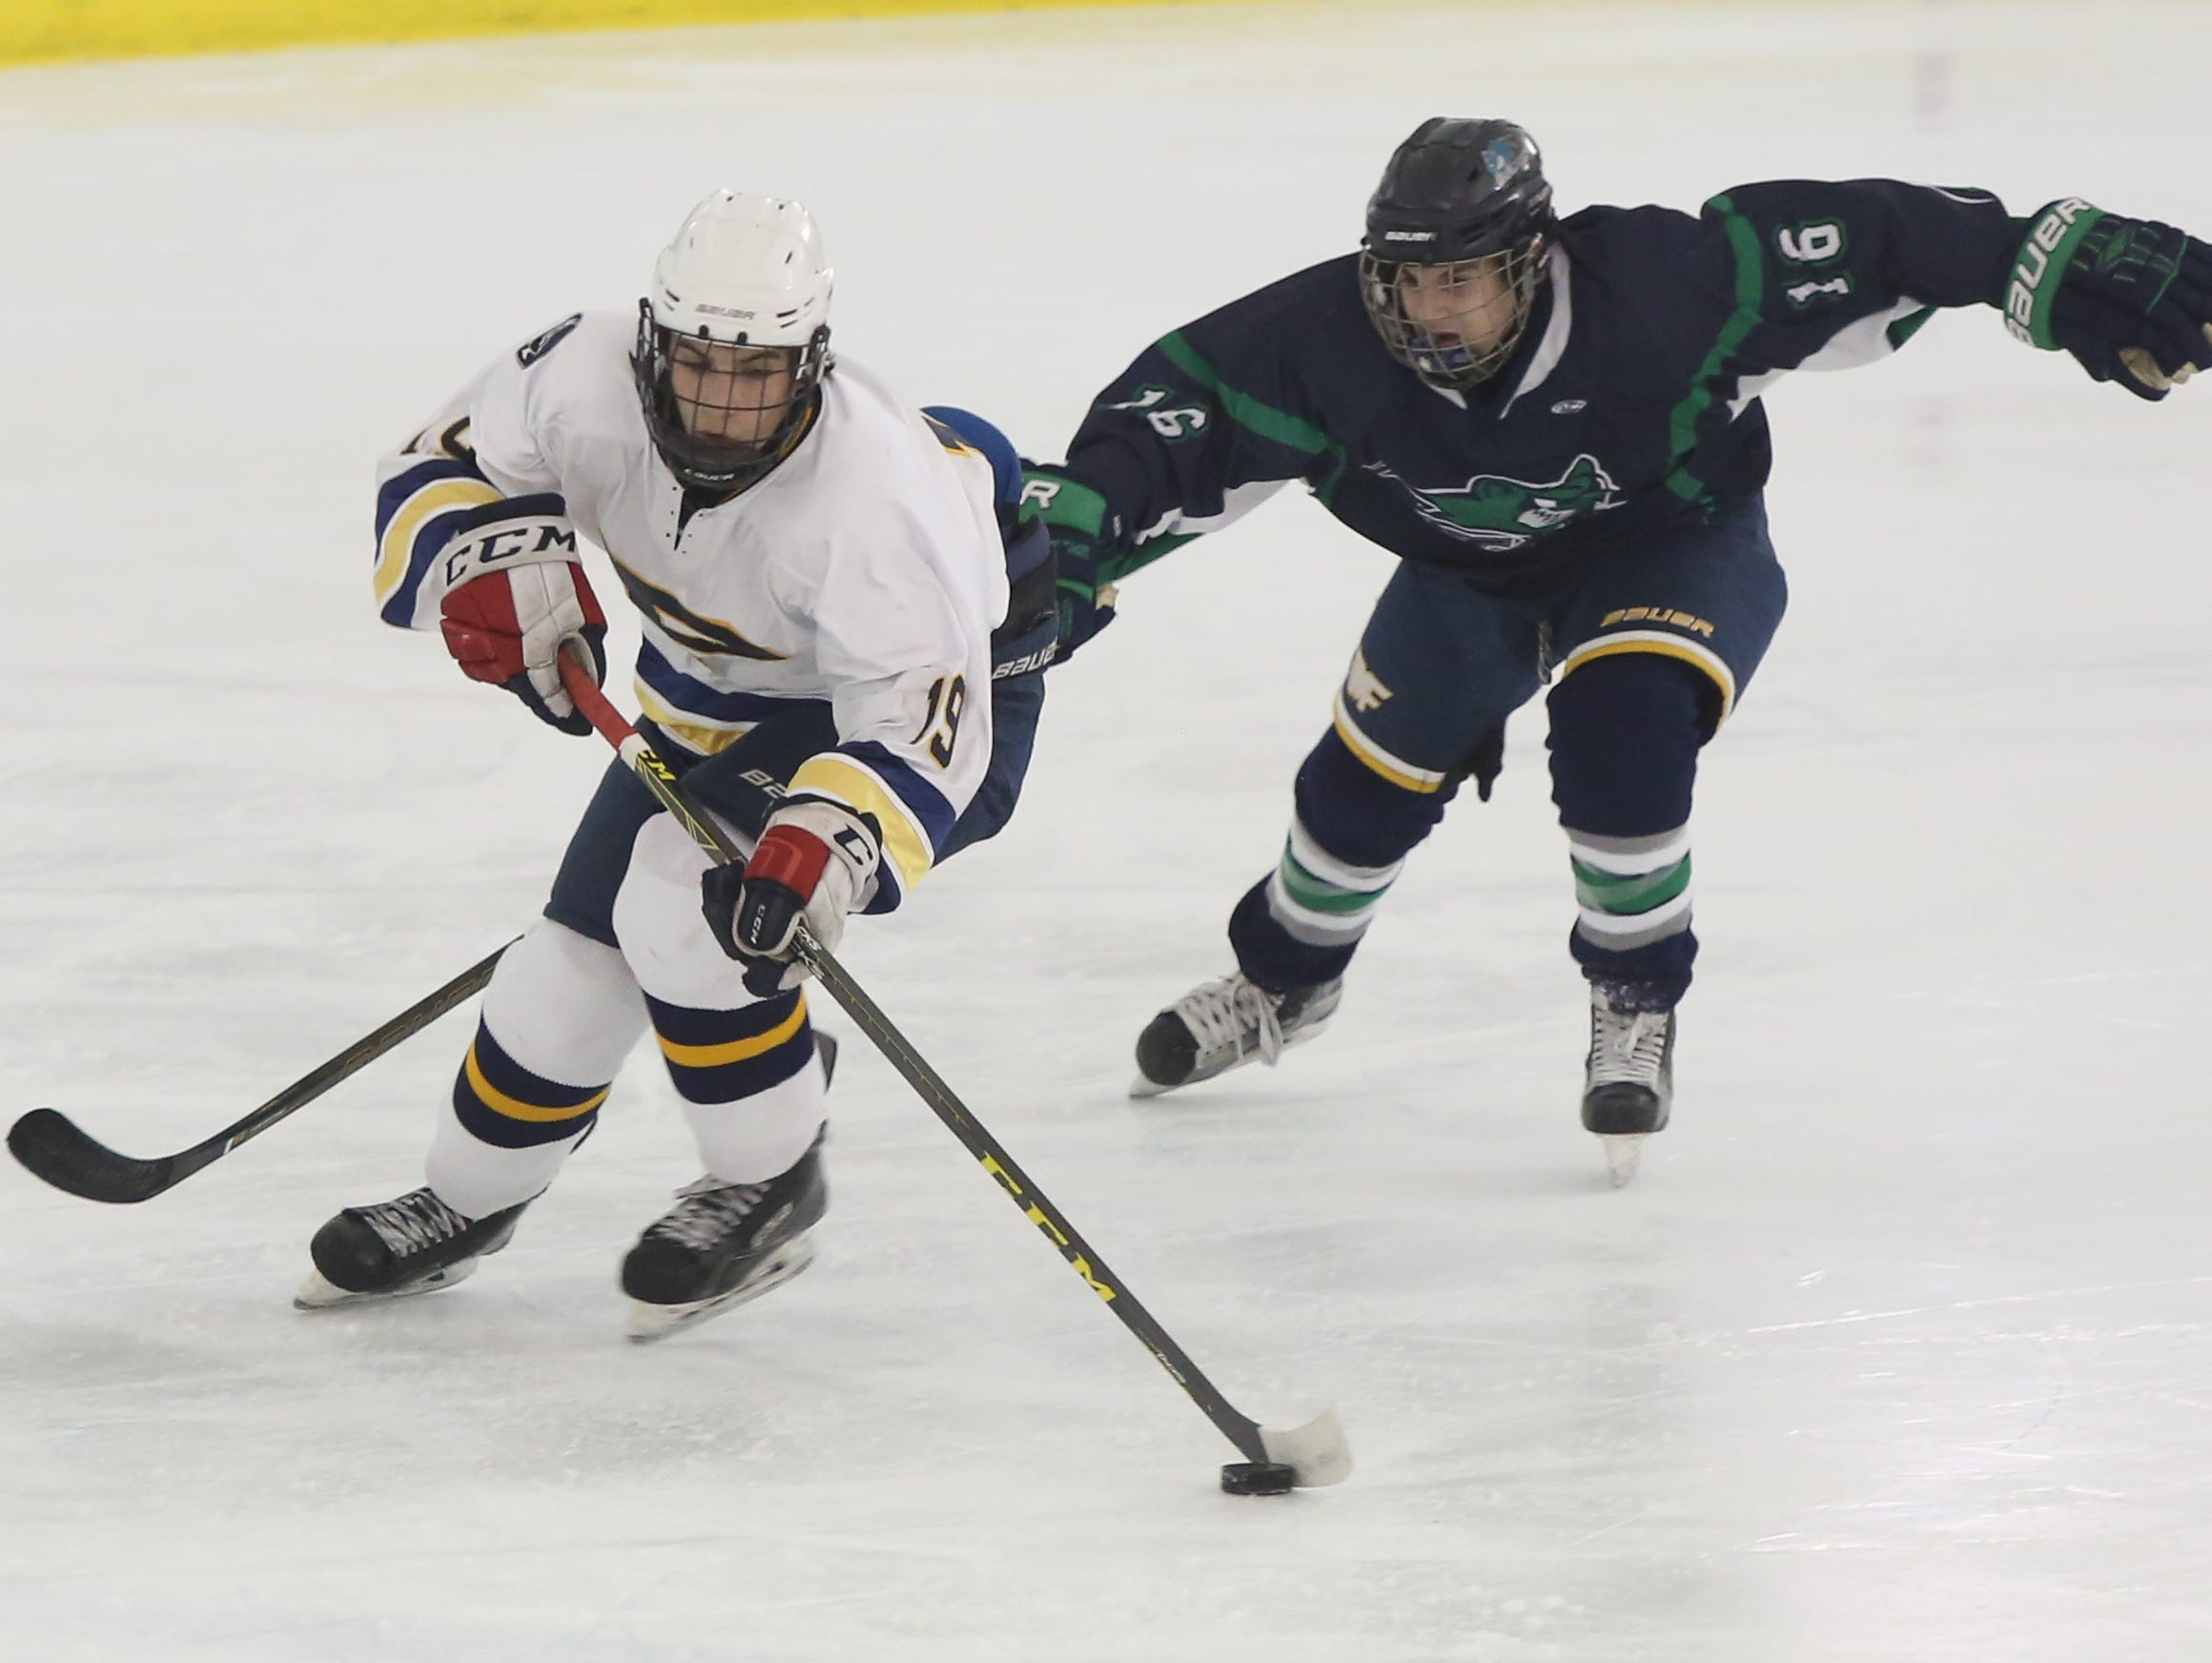 Pelham plays Mt. Pleasant during ice hockey Section 1 Division 2 quarterfinal at the Ice Hutch in Mount Vernon Feb. 24, 2016.